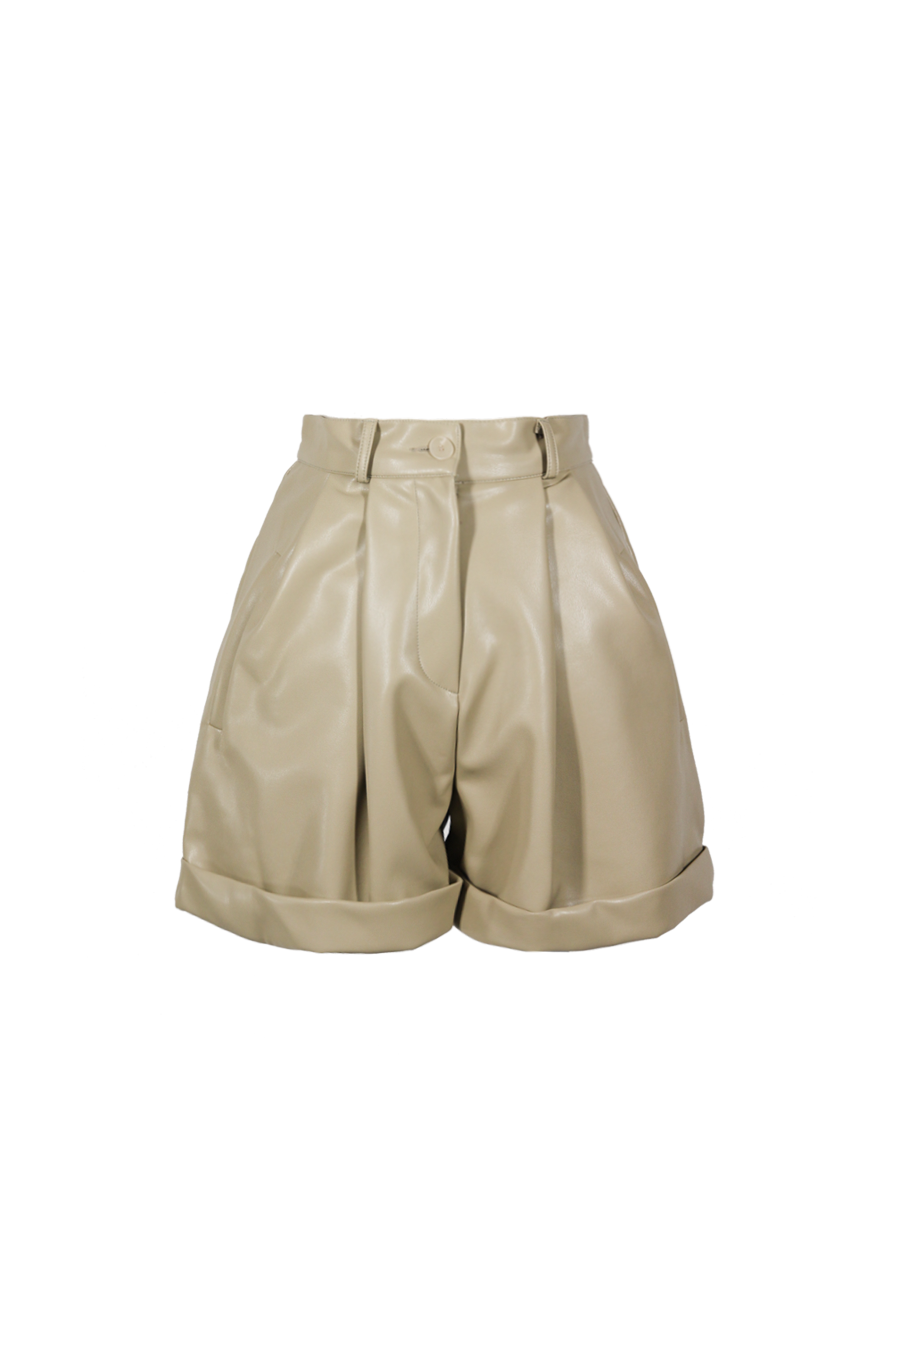 OLIVIA NZ Store online | Bellamy Pintuck Shorts / Beige